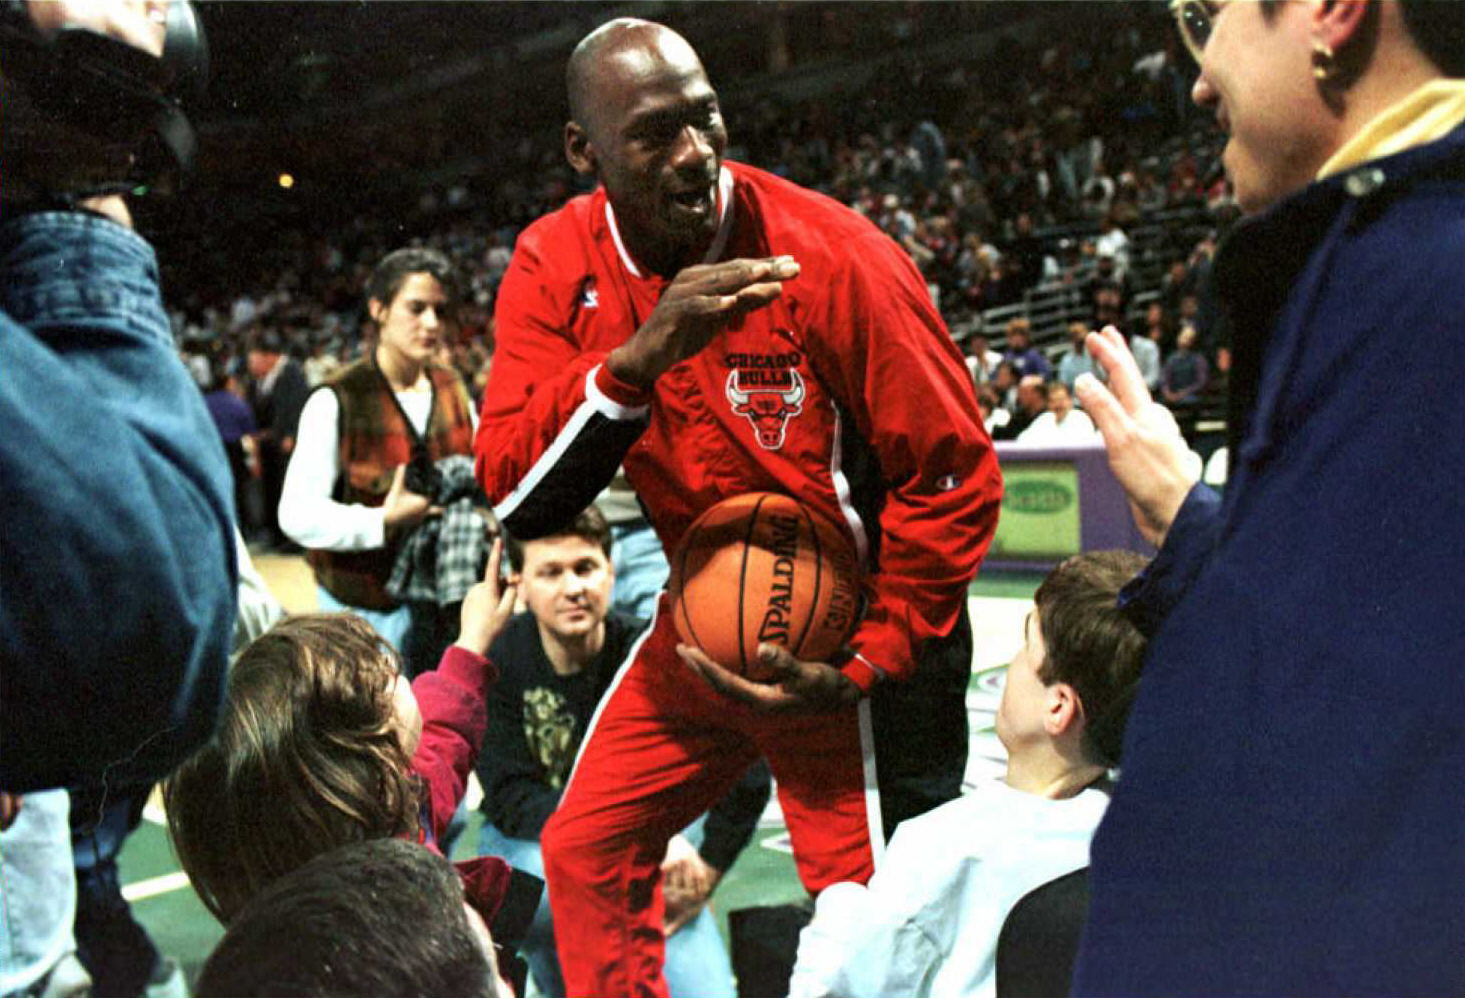 Michael Jordan's Sister Fueled His Competitive Fire With an Important Early Victory